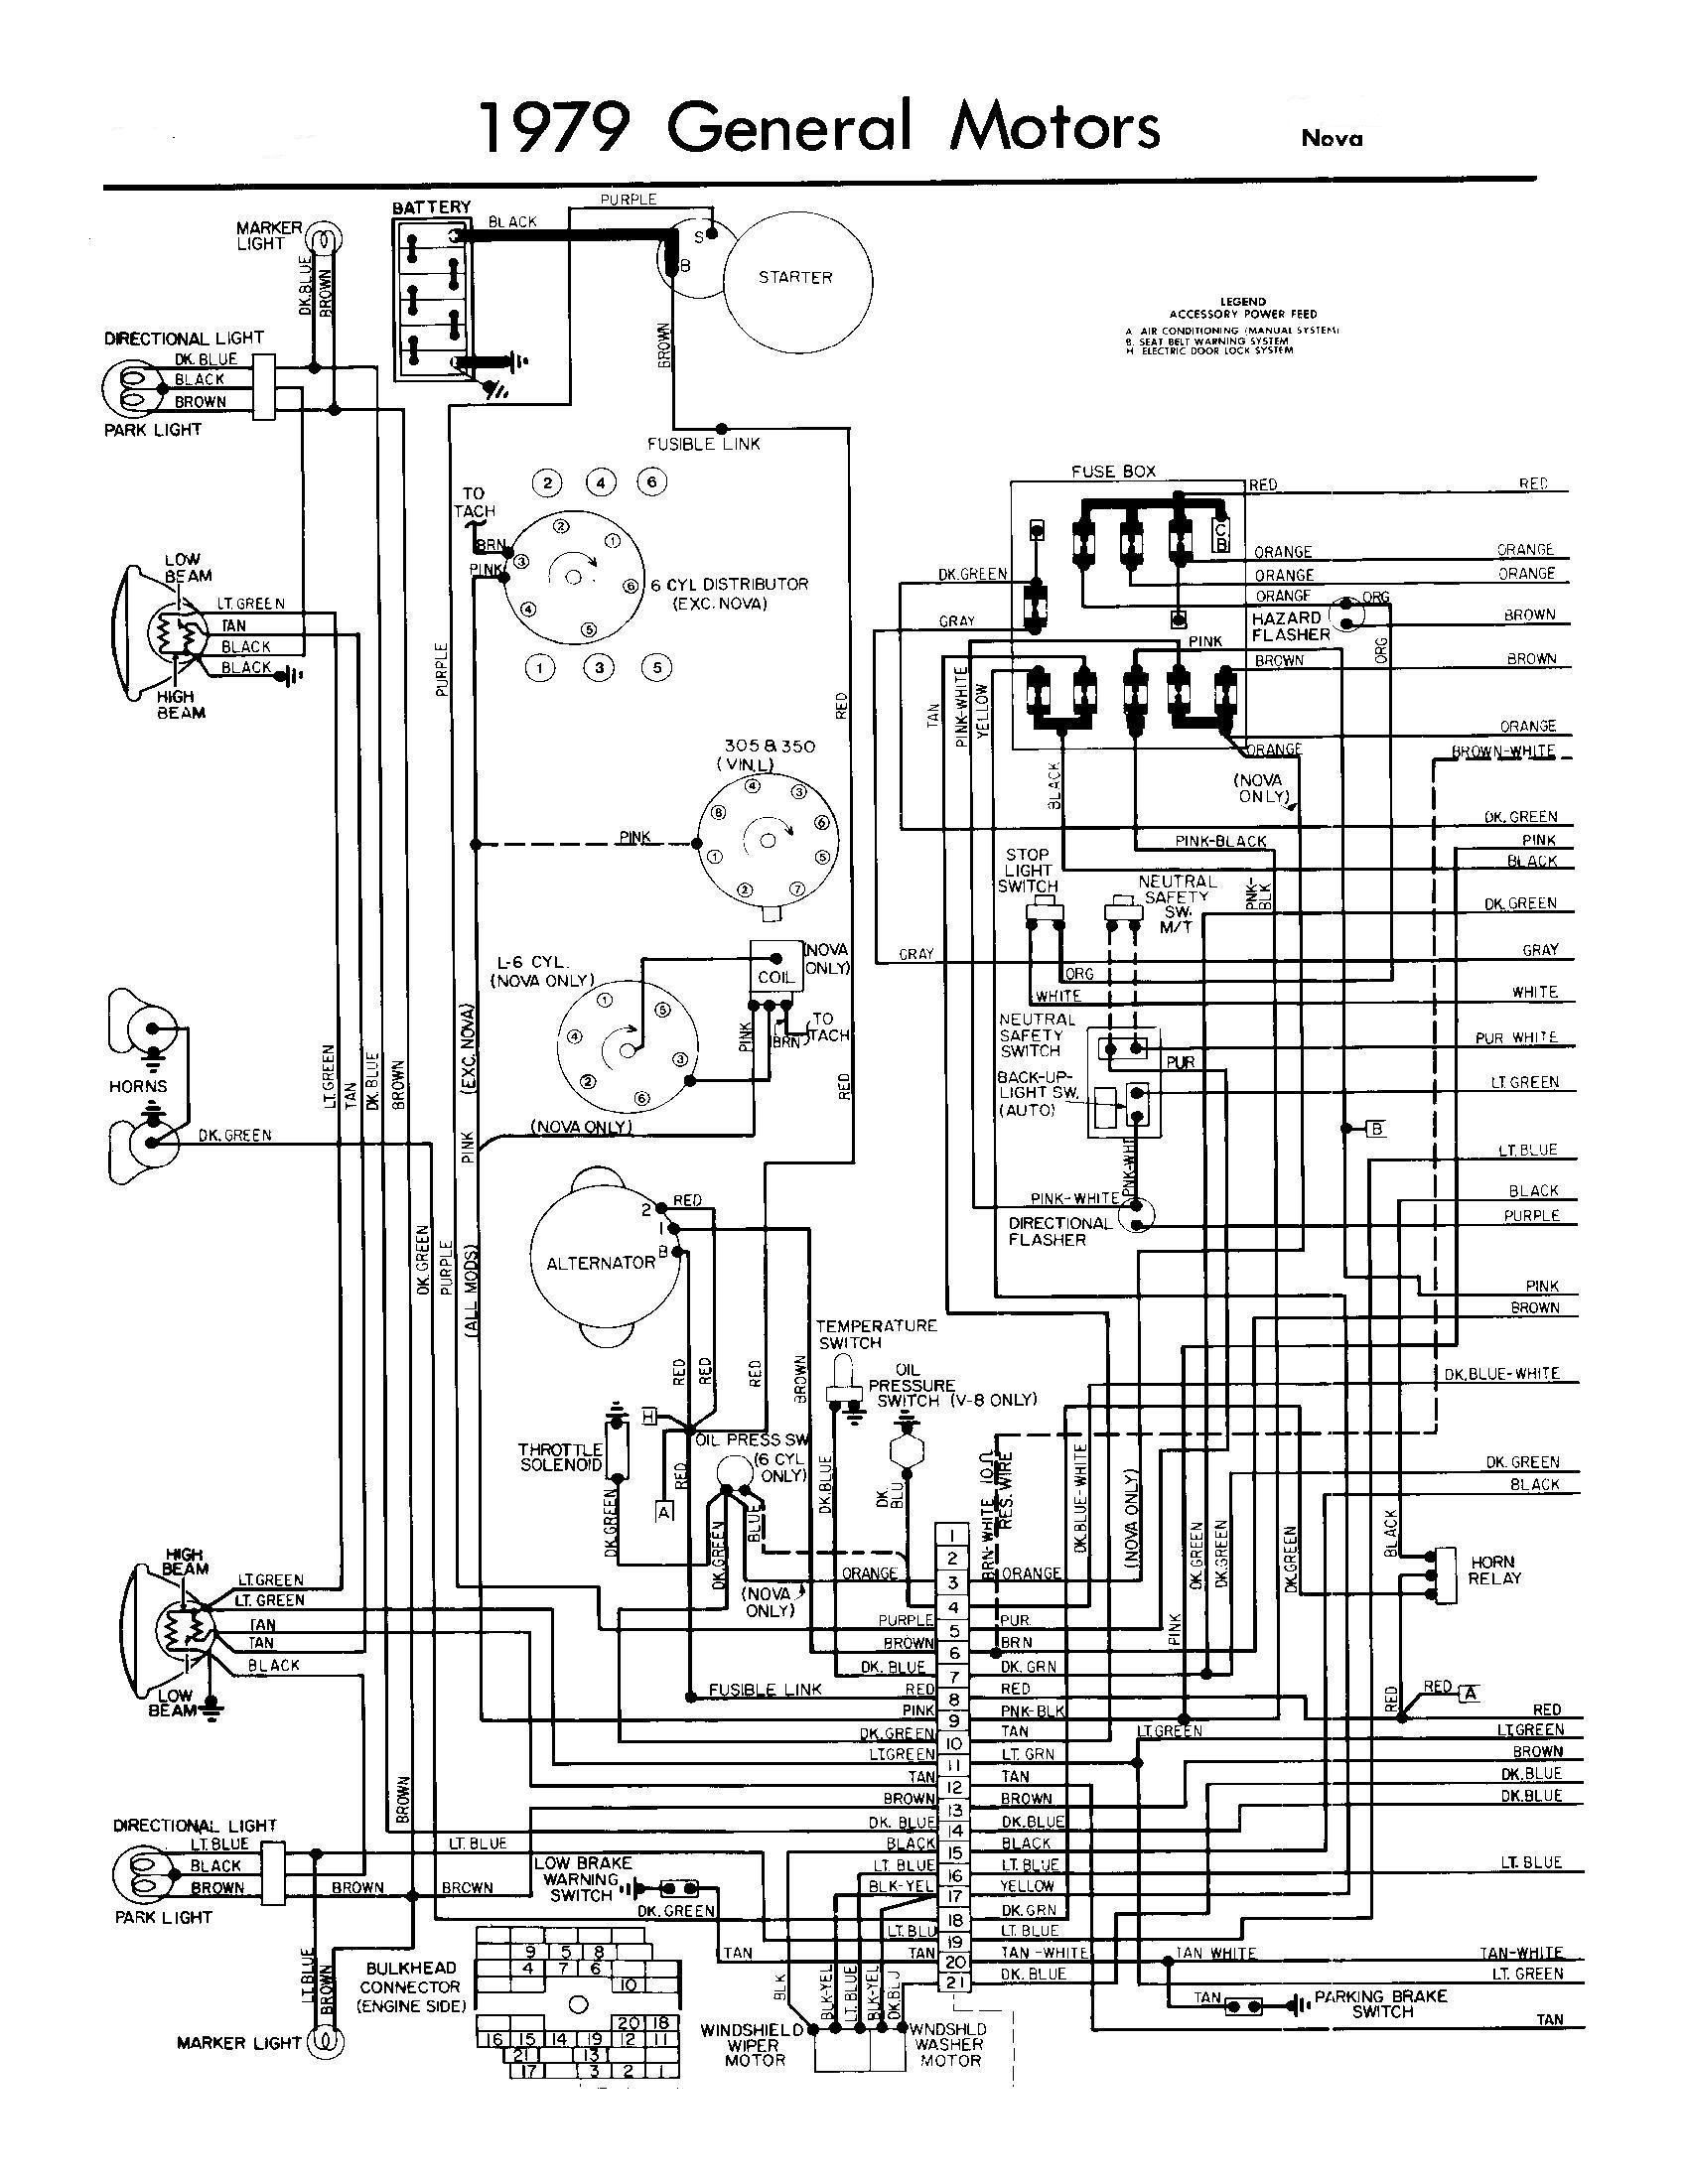 1972 Chevy C20 Turn Signal Wiring Diagram All Kind Of 1954 Ford Blinker Switch Wire Images Gallery